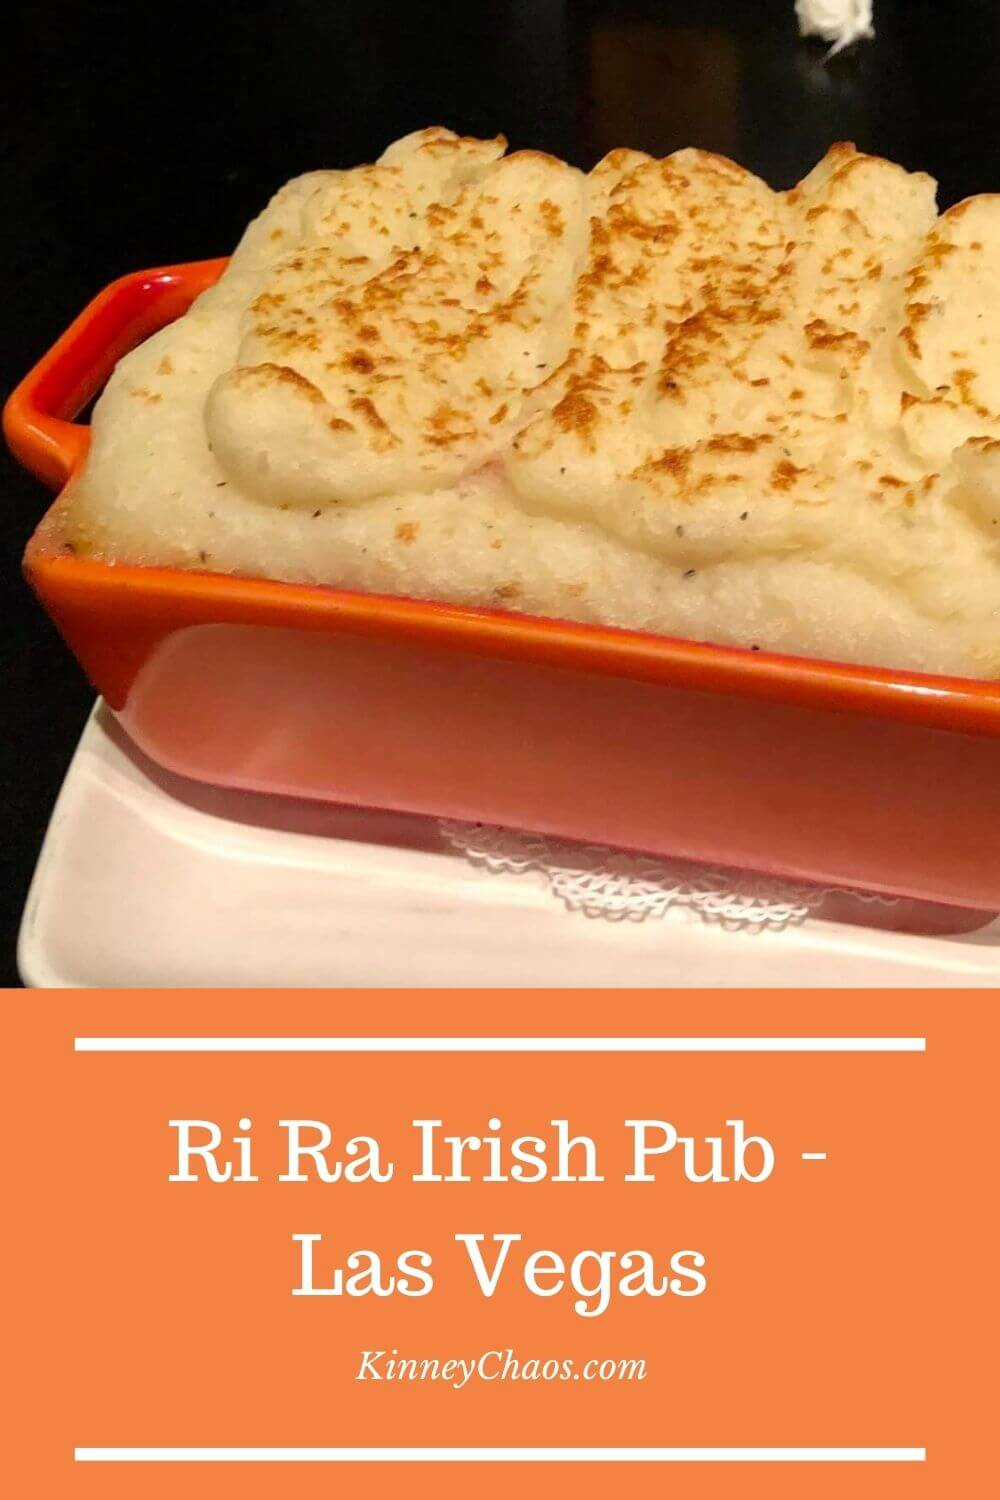 Ri Ra Irish Pub - A great place to eat with good food, good service, and AMAZING dessert.